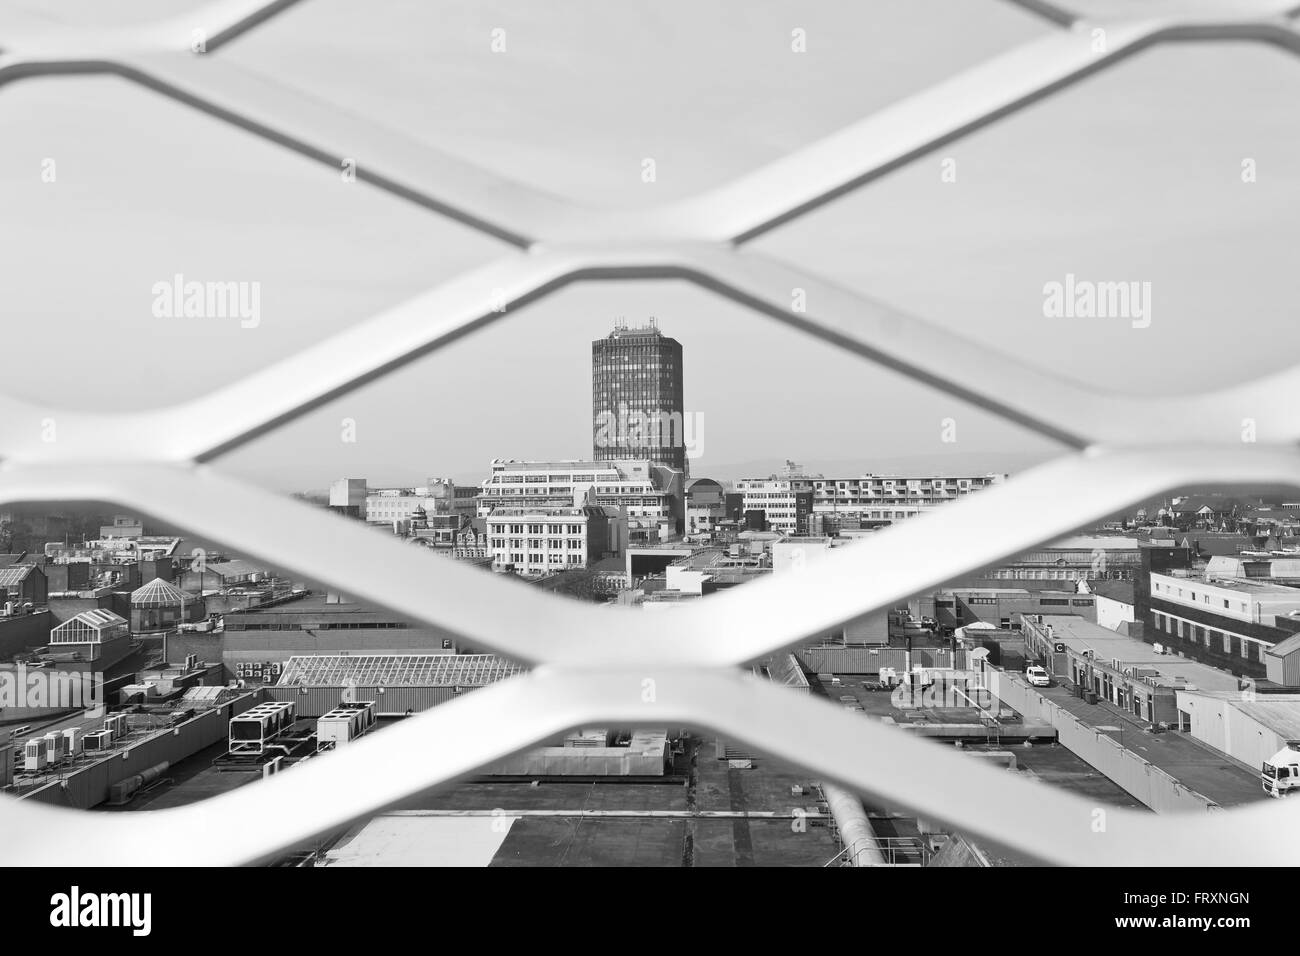 Landscape of Cardiff City Centre from top of St David's car park. - Stock Image